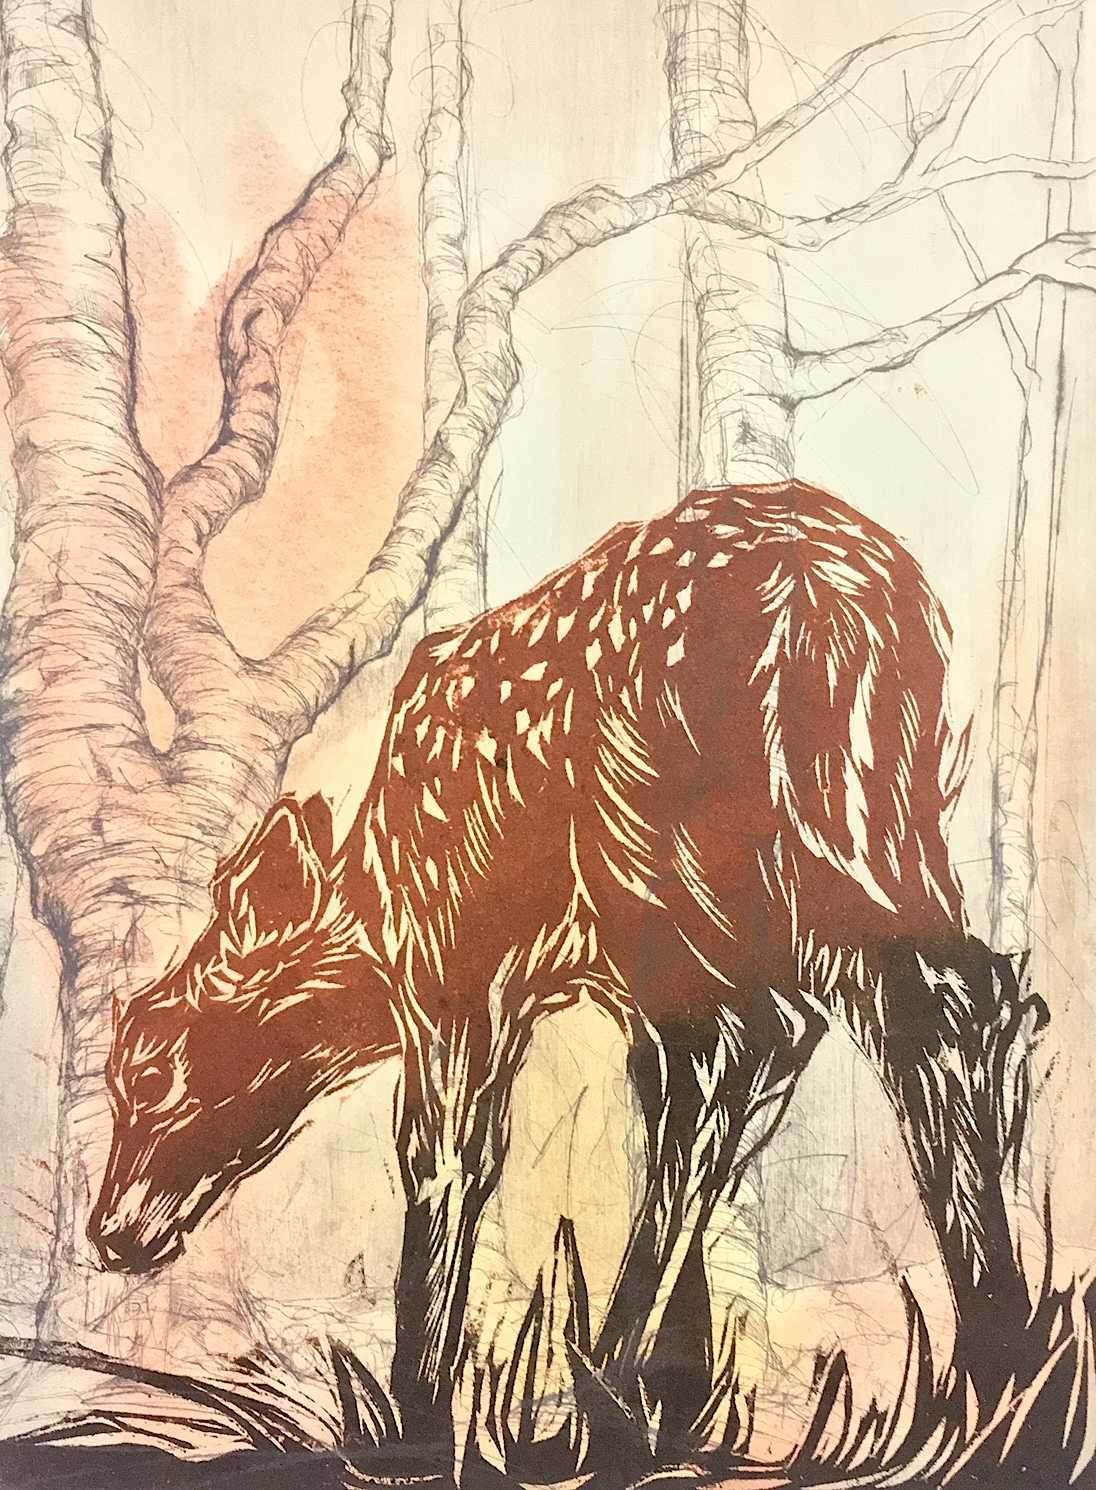 Handmade print of a young deer in the forest. Reds, black and white